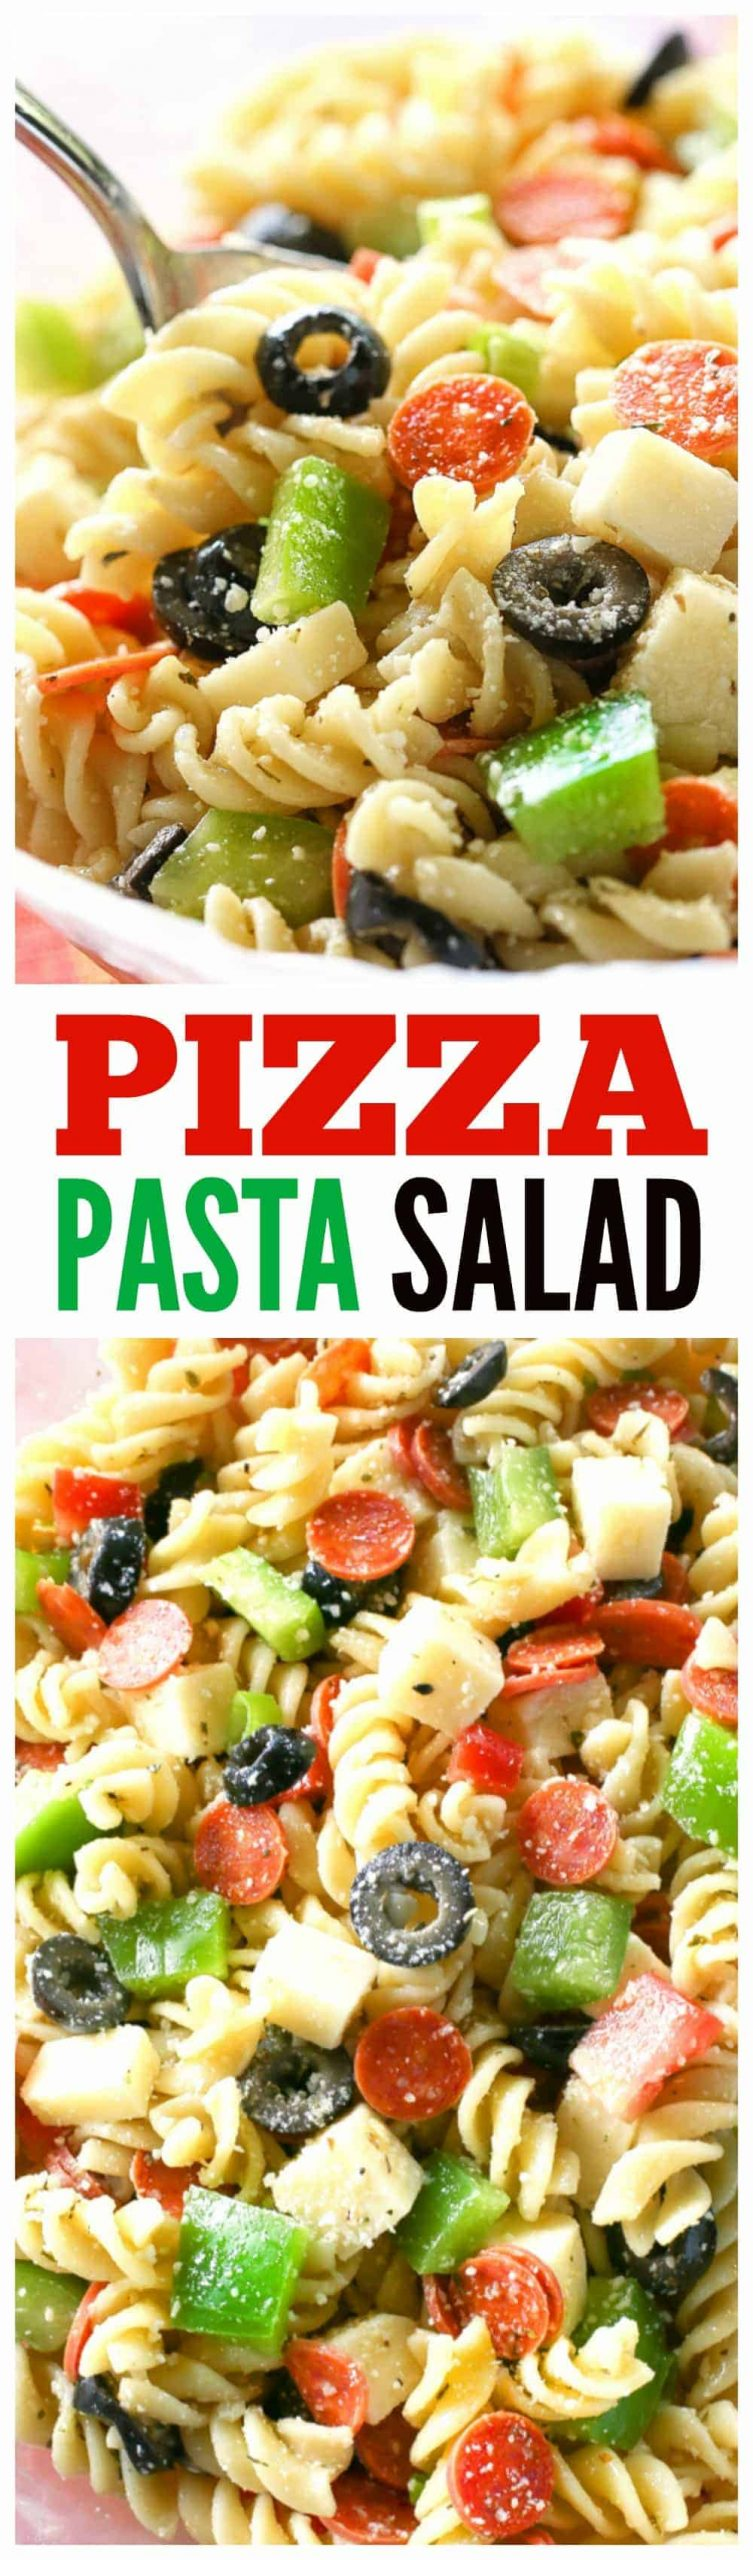 Pizza Pasta Salad has all the flavors of a delicious pizza in a pasta salad.Mini pepperonis, olives, green bell pepper, cubes of cheese, tomato - all tossed in a vinaigrette. A potluck favorite! #pizza #pasta #salad #potluck #bbq #sidedish